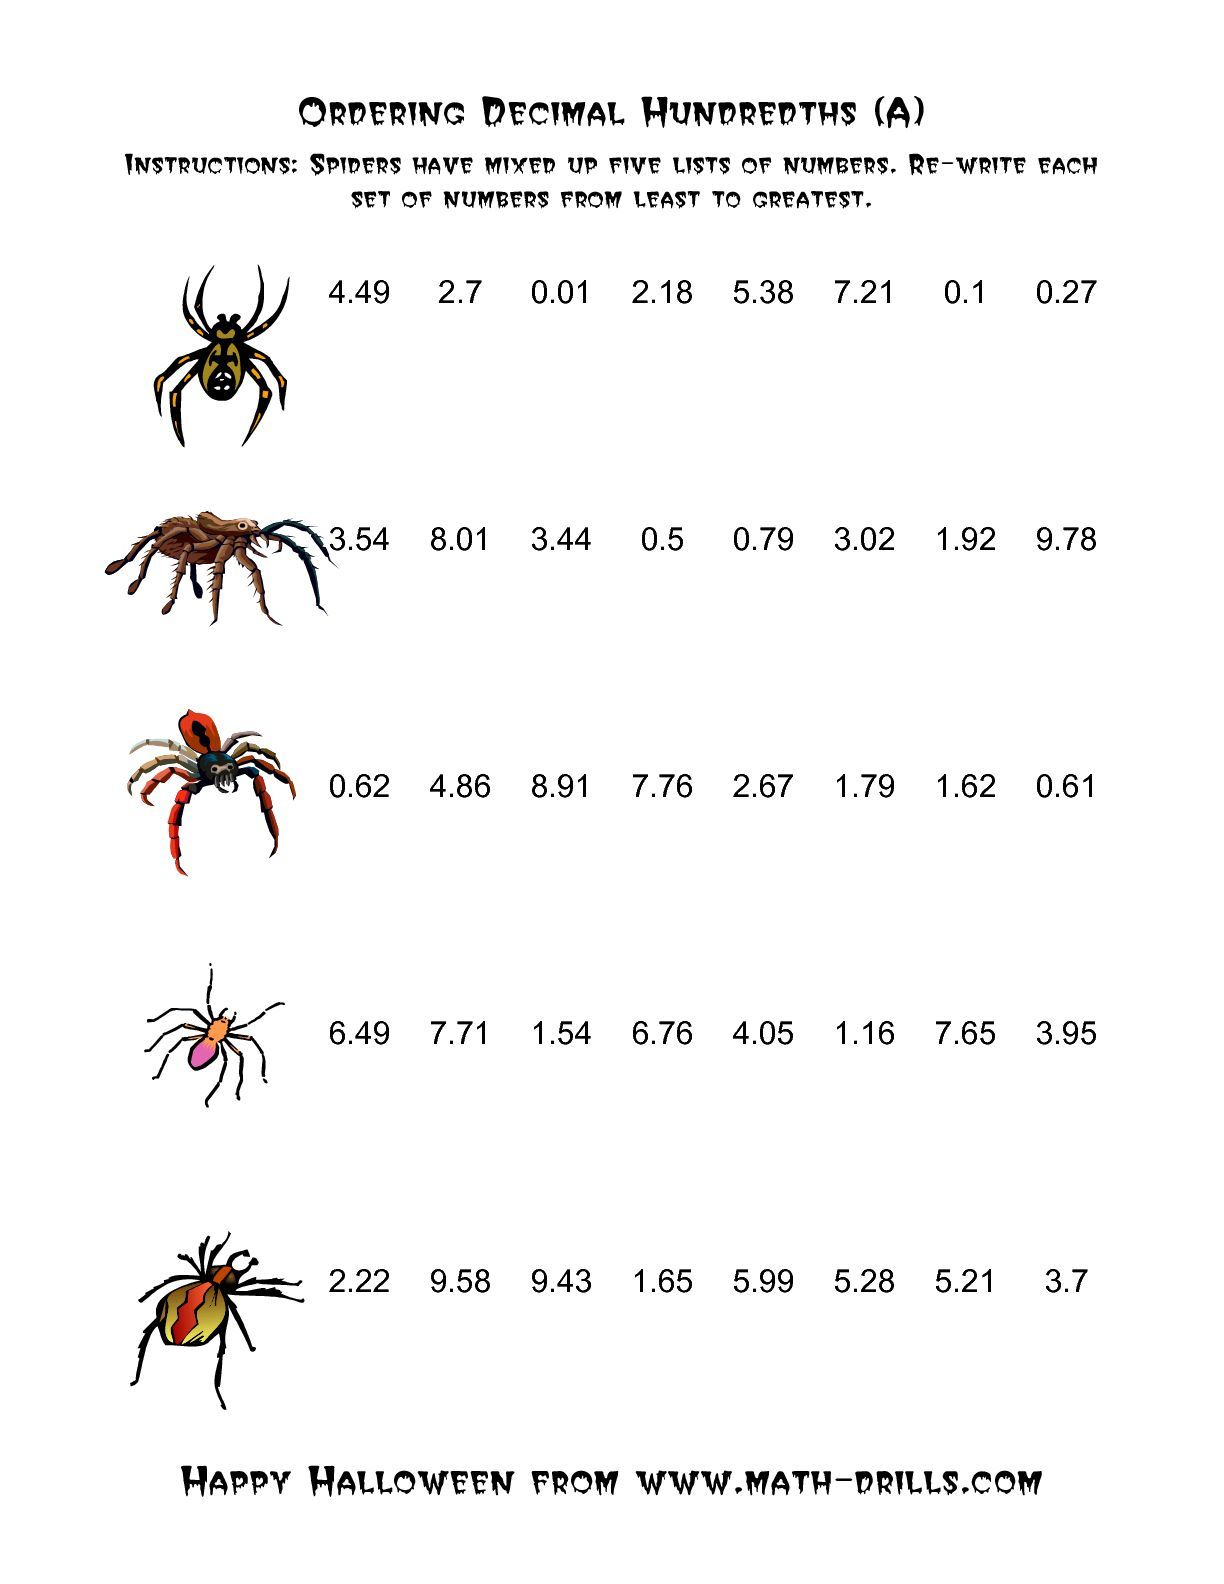 The Spiders Ordering Decimal Hundredths A